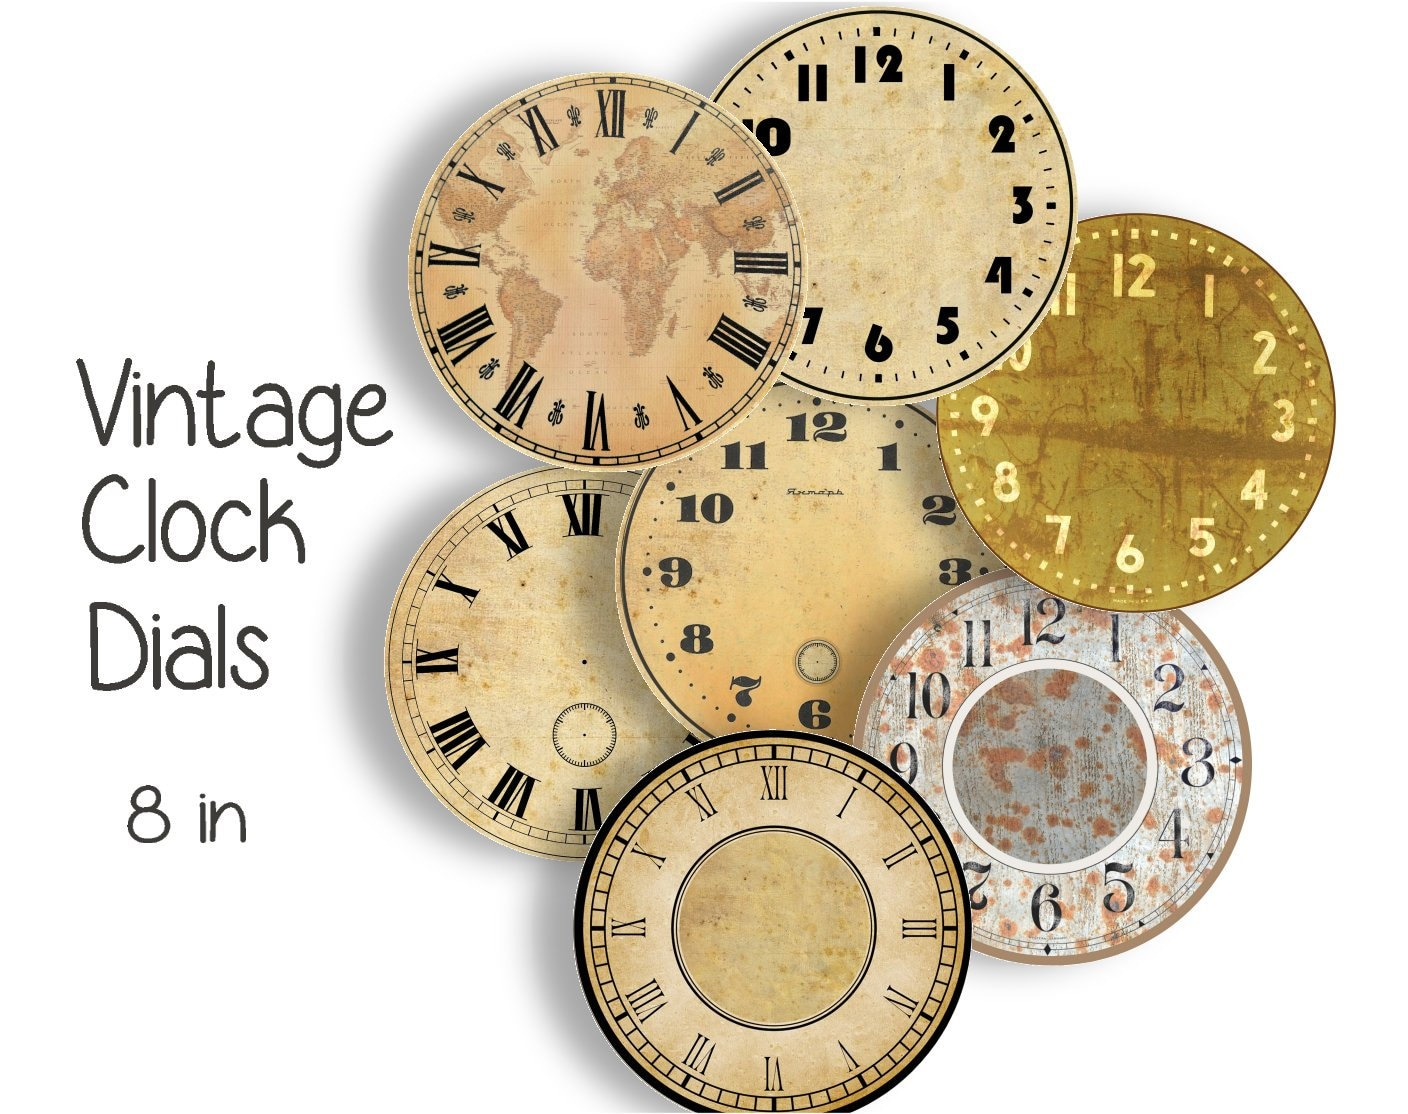 picture about Printable Clock Faces for Crafts named Classic CLOCK FACES - 8 inch Craft Circles - Fast Down load Electronic Printable Clock Check Dials Steampunk Professional Antique Clocks